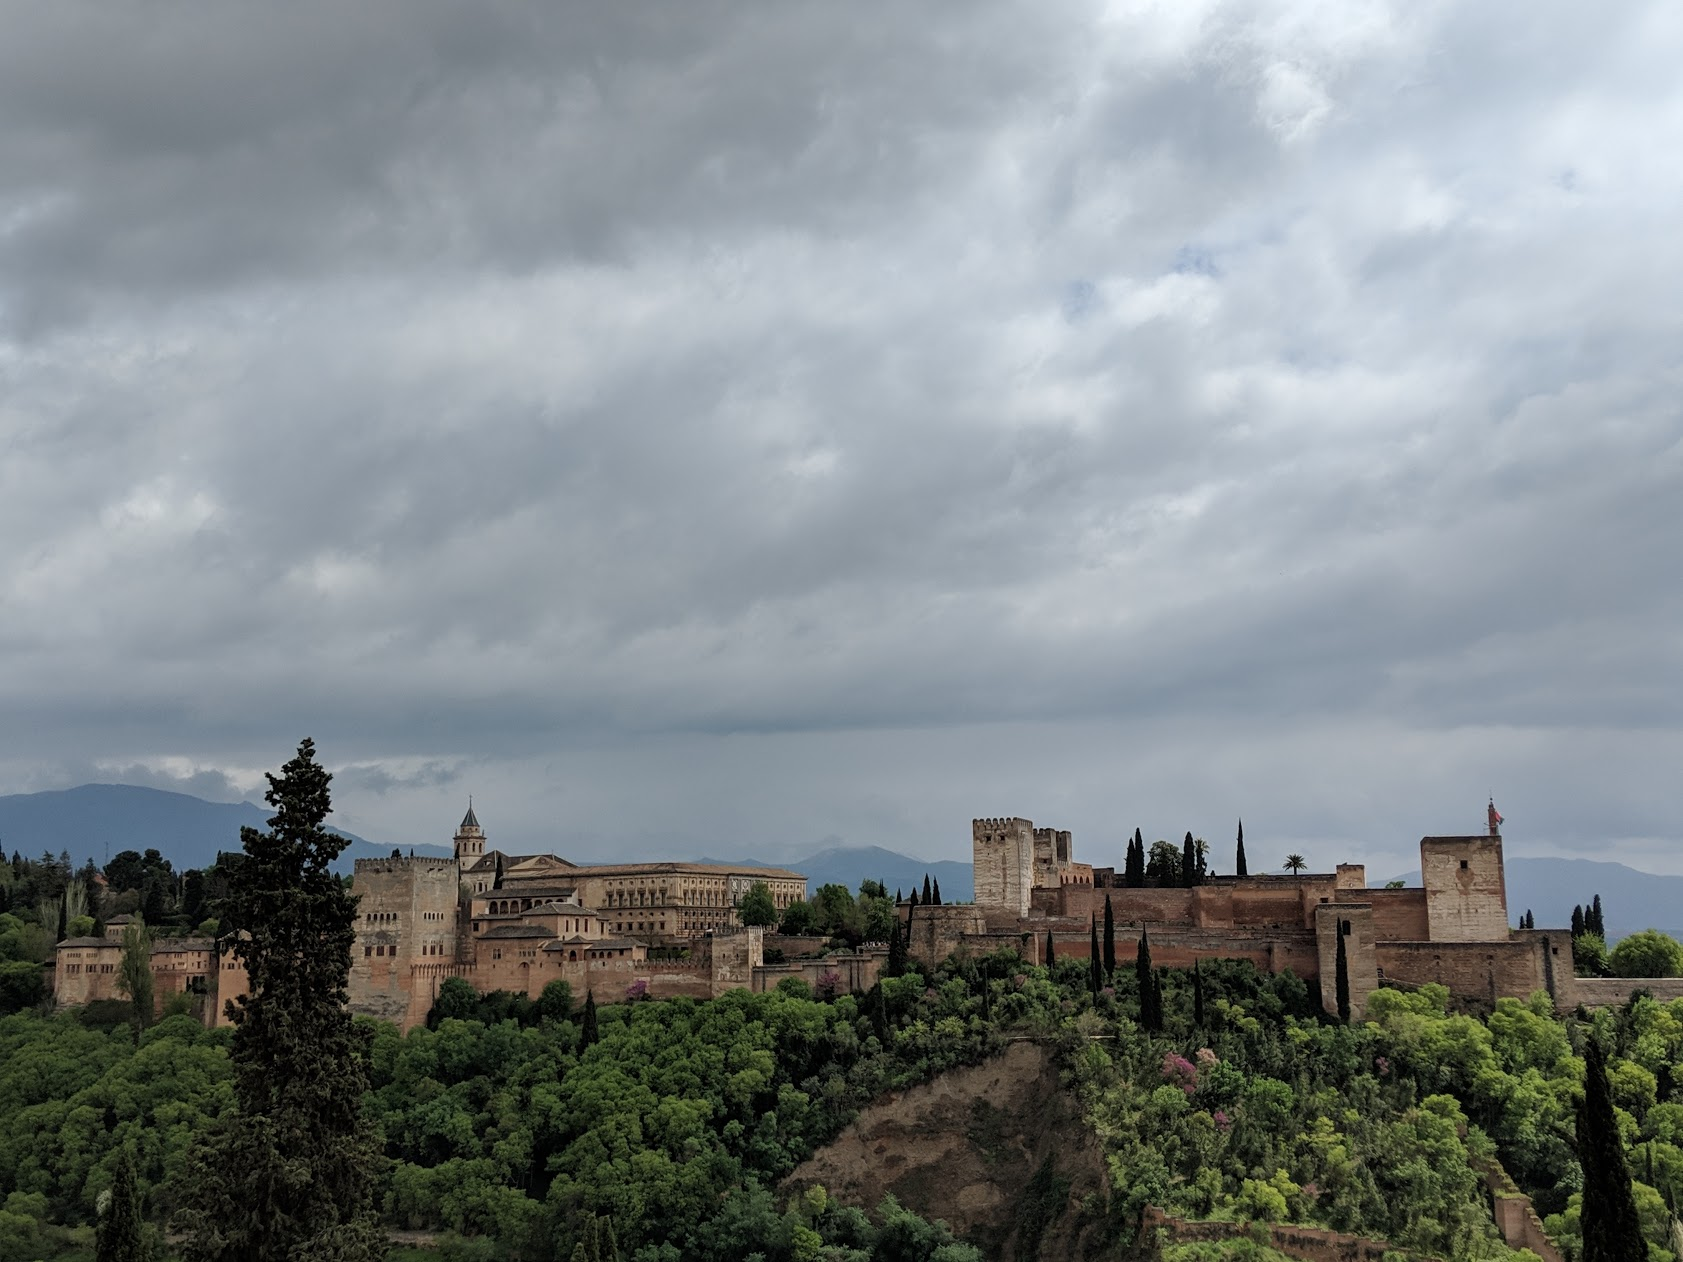 A view of the Alhambra from the nearby Albacin neighborhood.